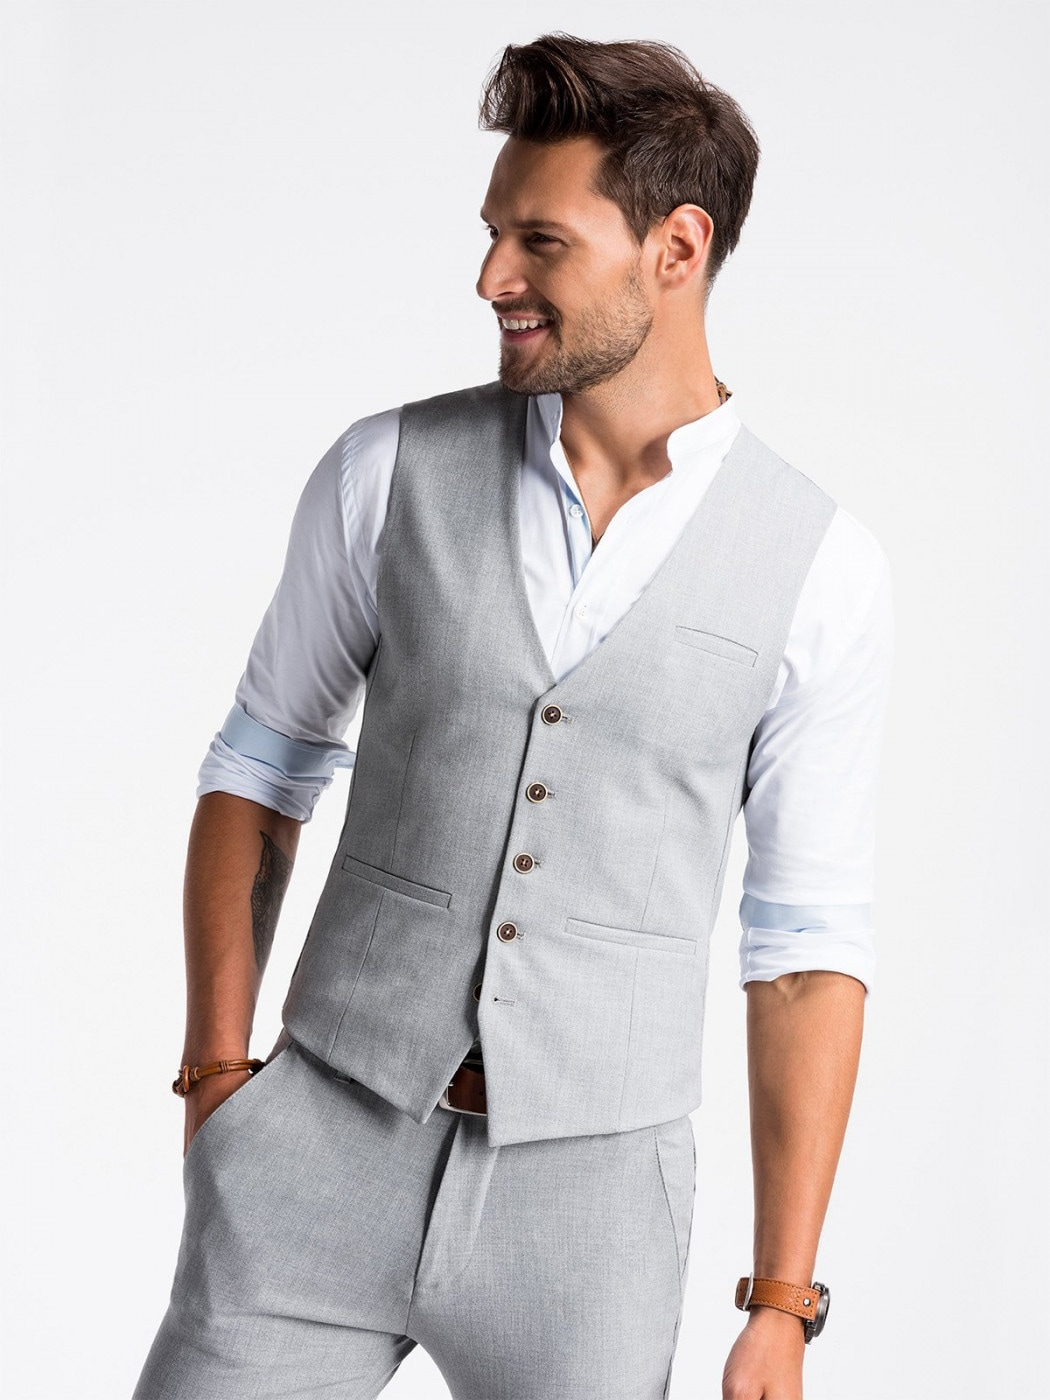 Ombre Clothing Men's vest   V47